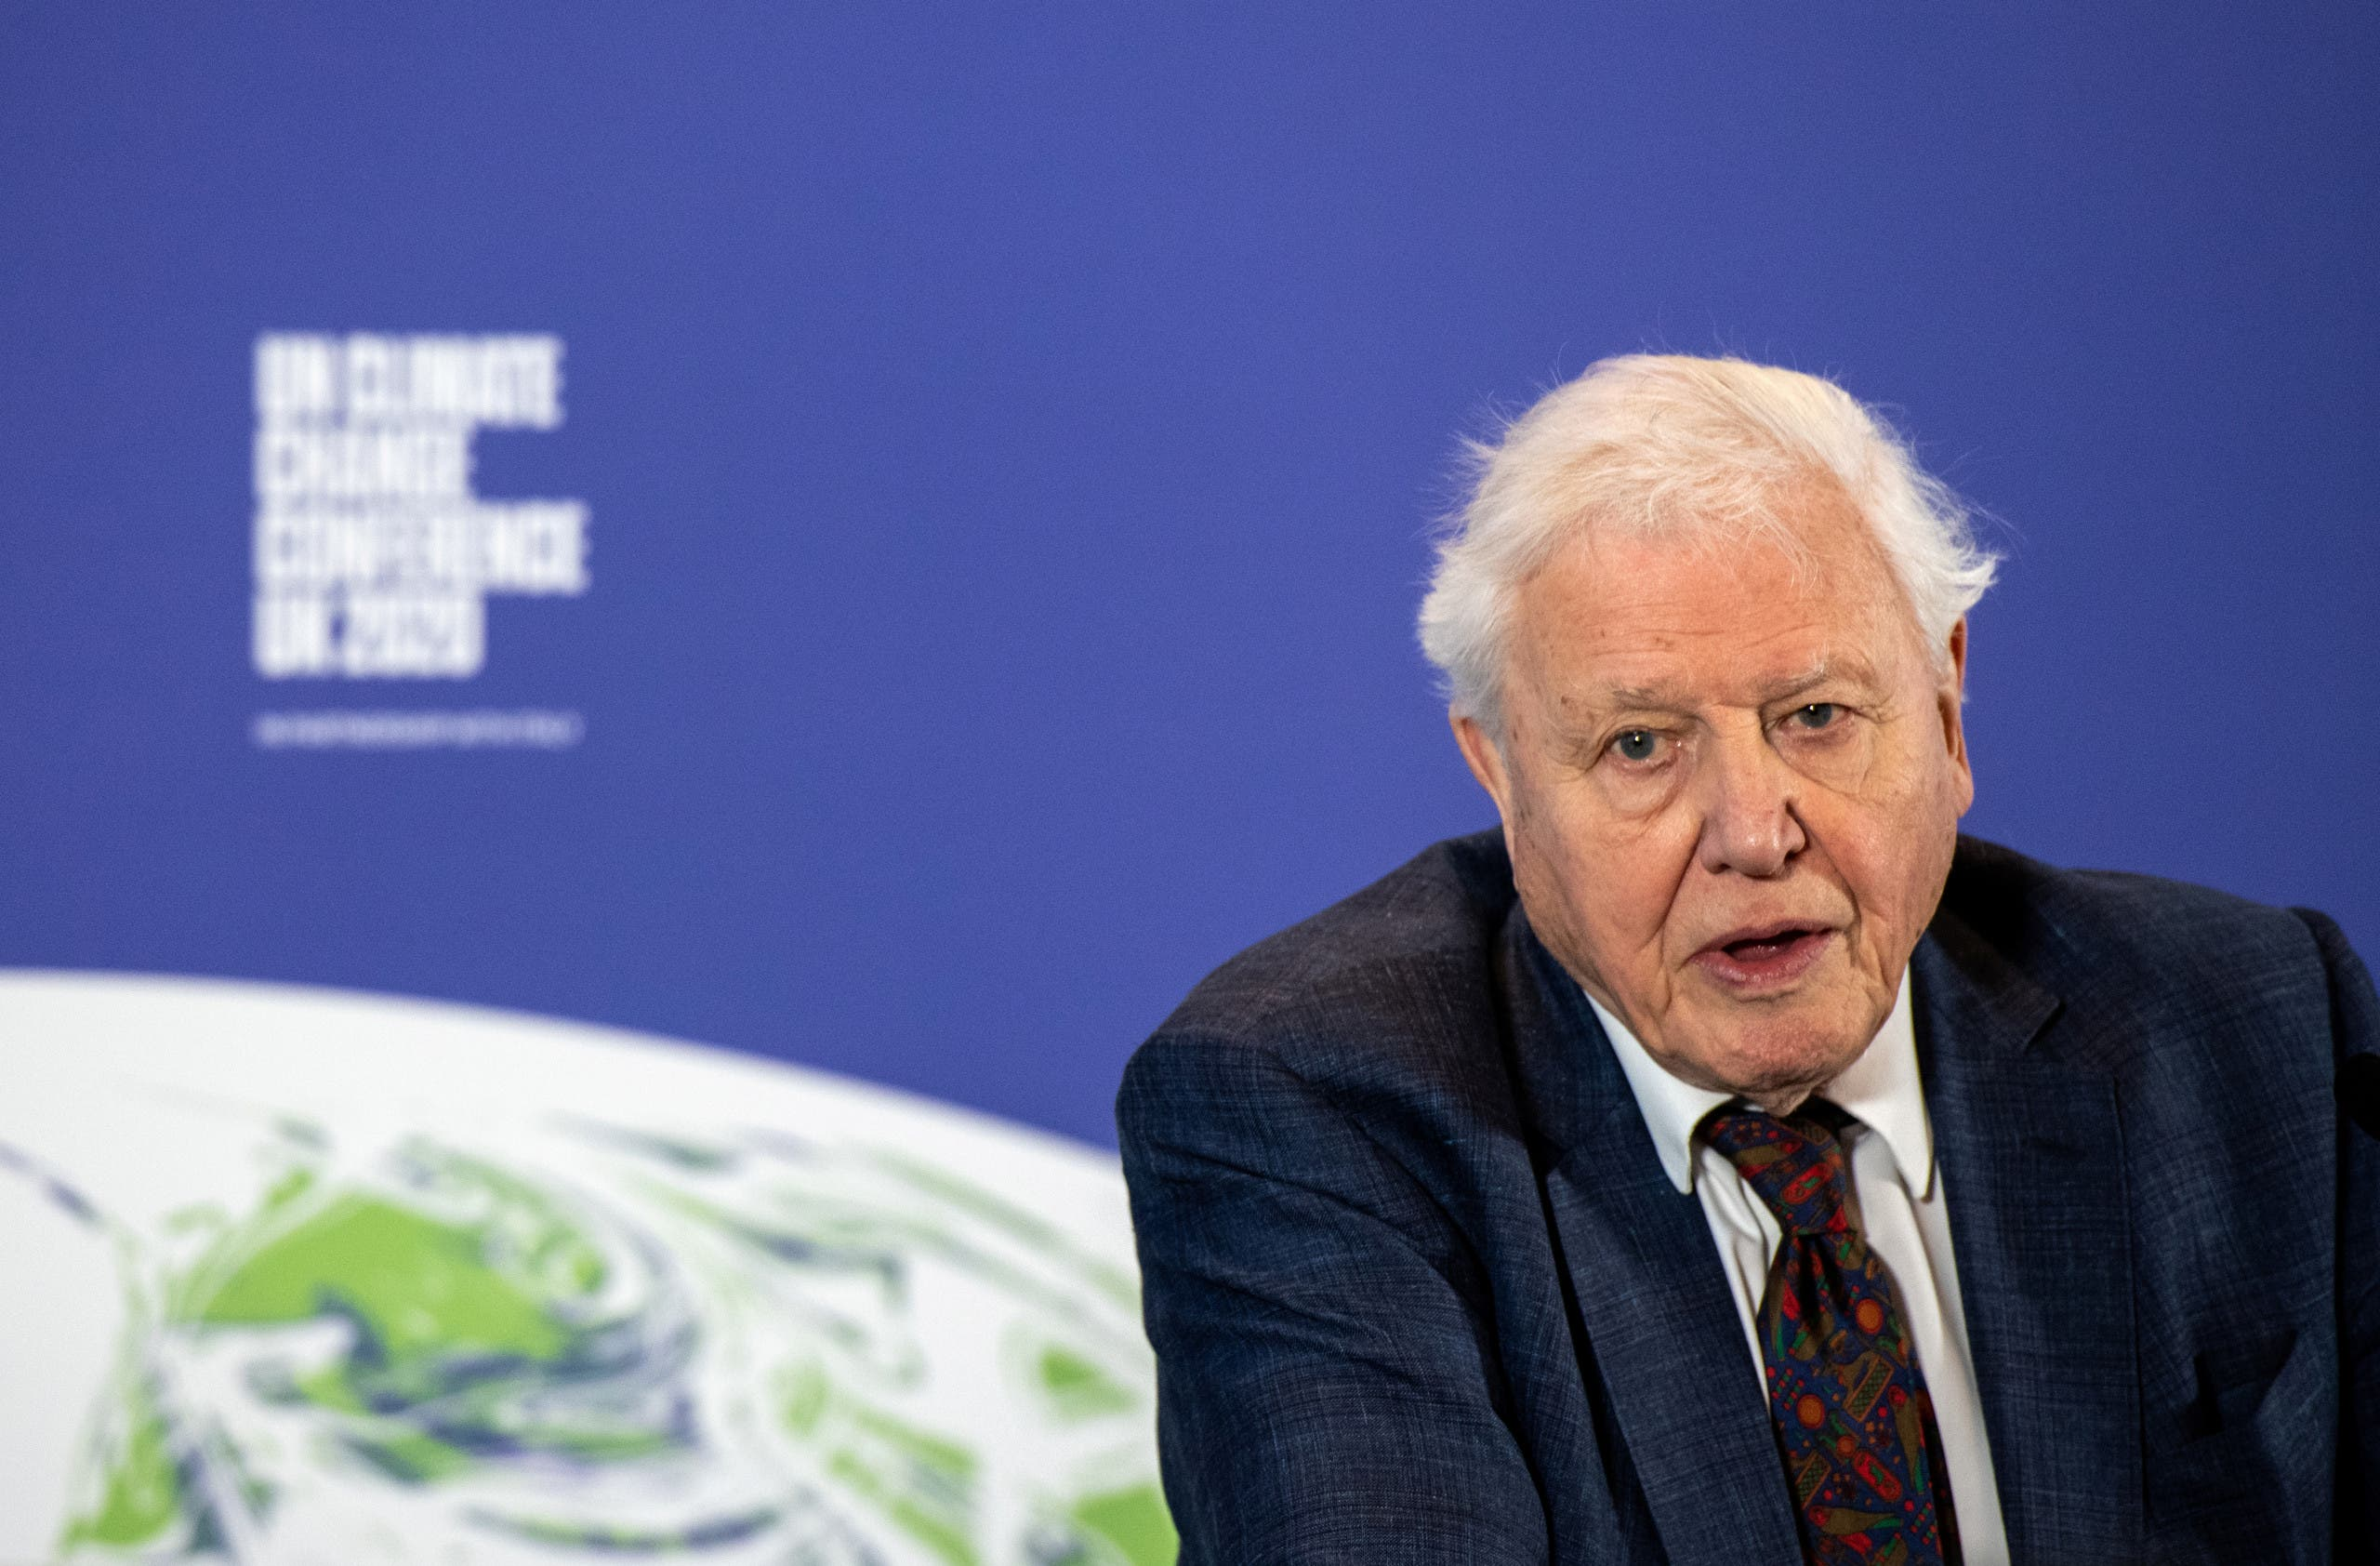 David Attenborough speaks during a conference about the UK-hosted COP26 UN Climate Summit, at the Science Museum in London, Britain February 4, 2020. (Reuters)